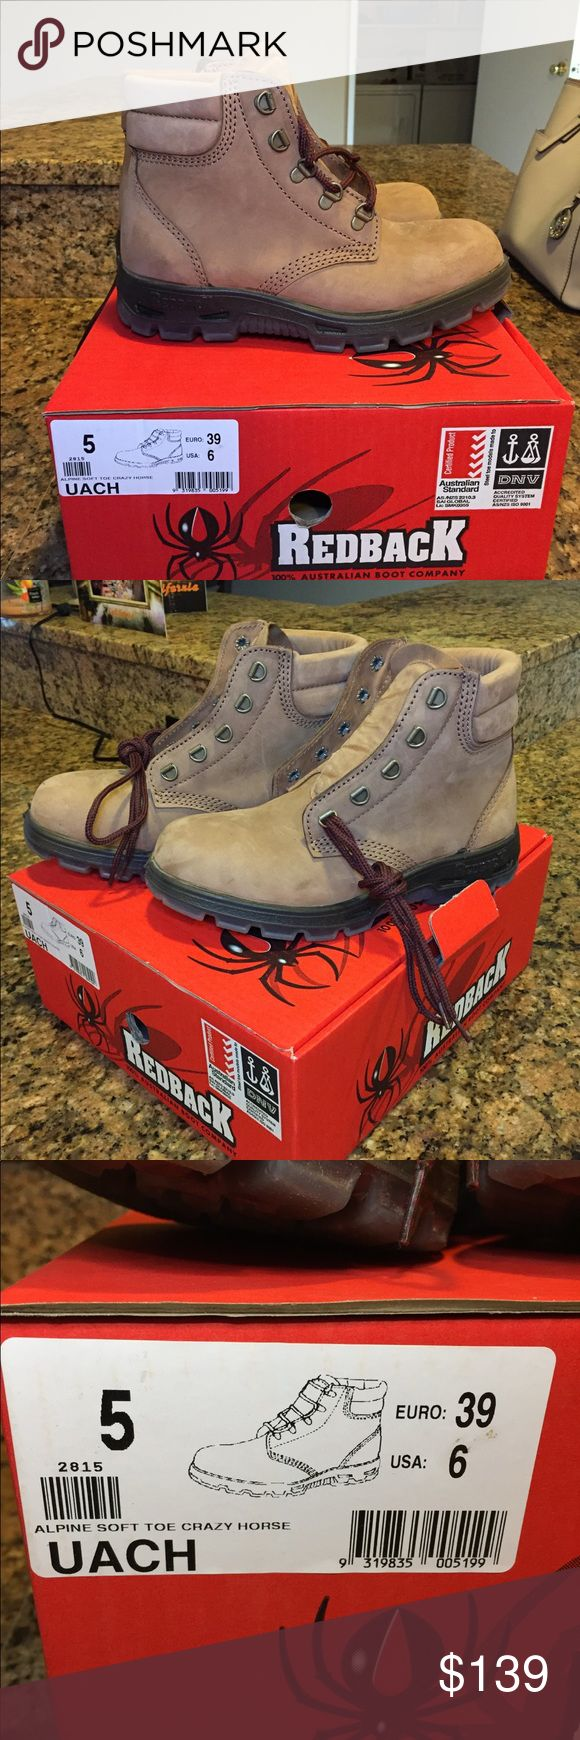 Redback Boots Never worn, brand new. Size 5.5 UK (8 women/6.5 men) they are very comfortable and will last for a couple years! Redback boots Shoes Ankle Boots & Booties